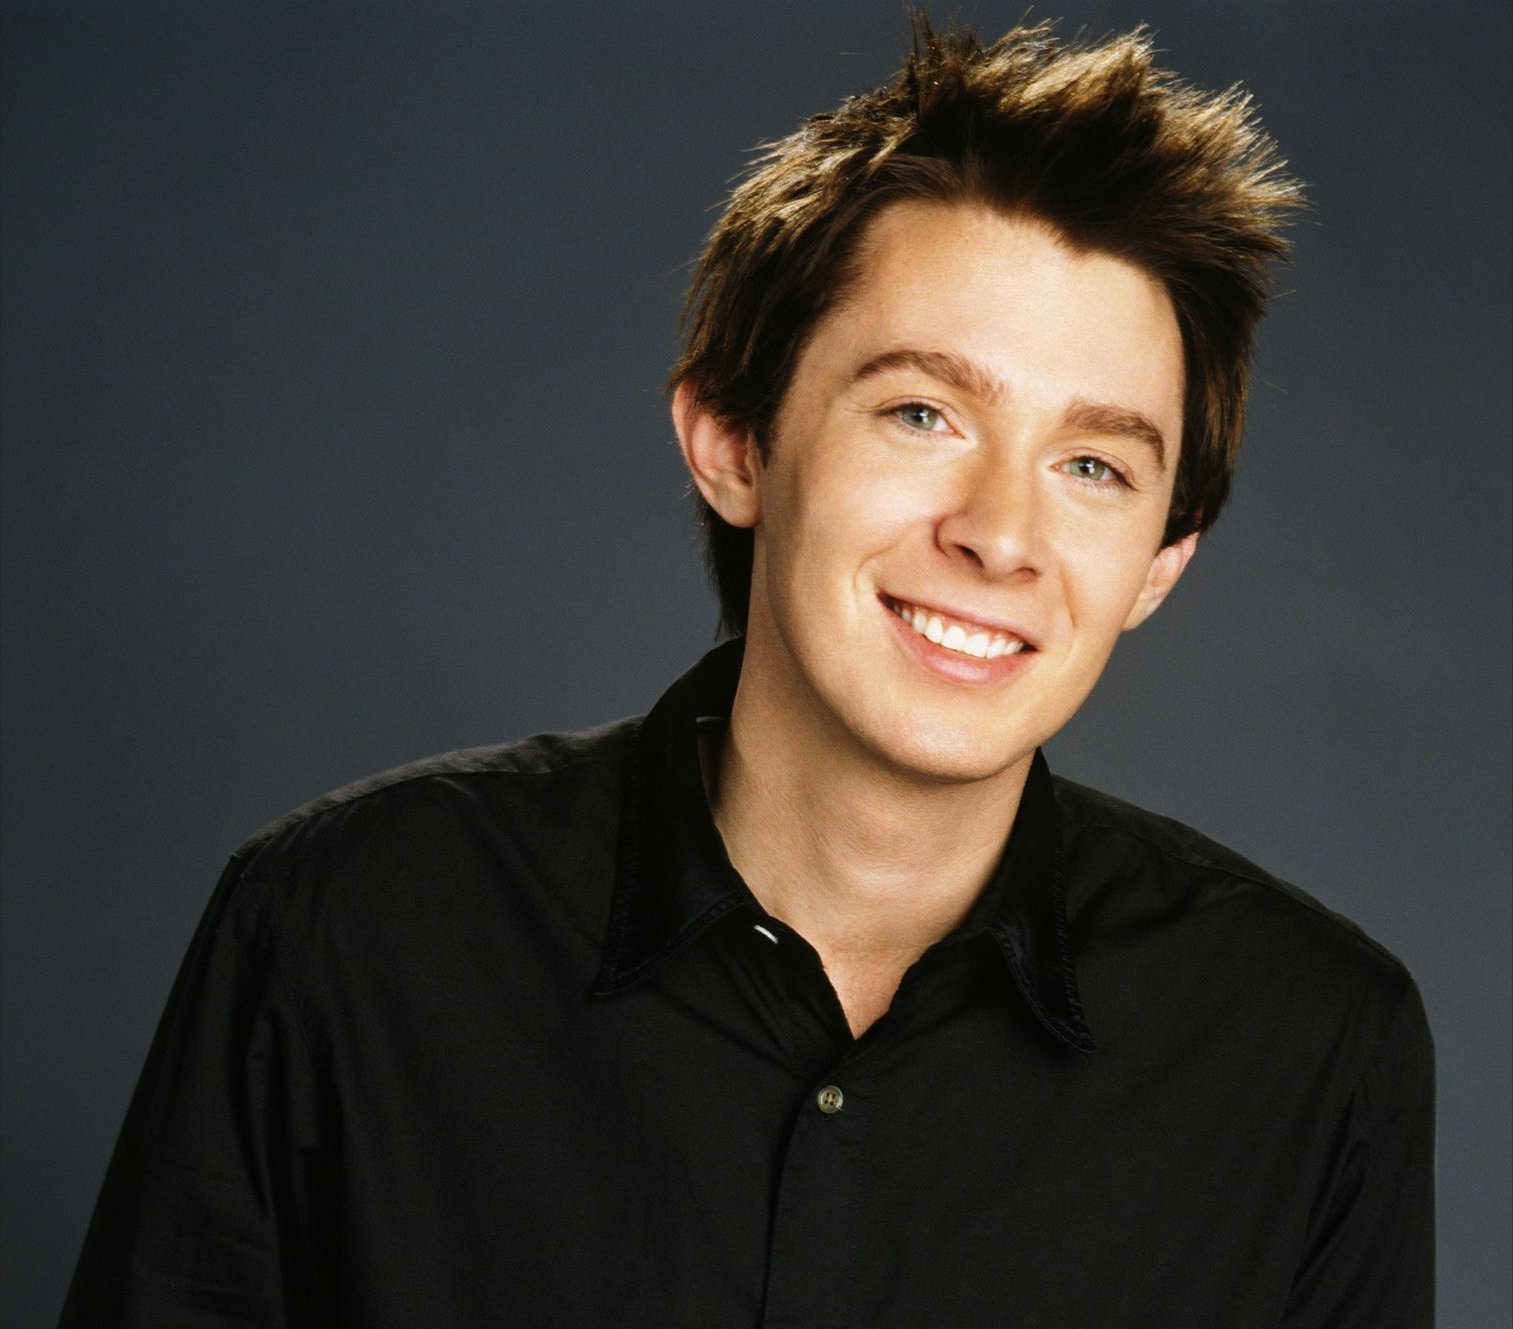 Image result for clay aiken on american idol